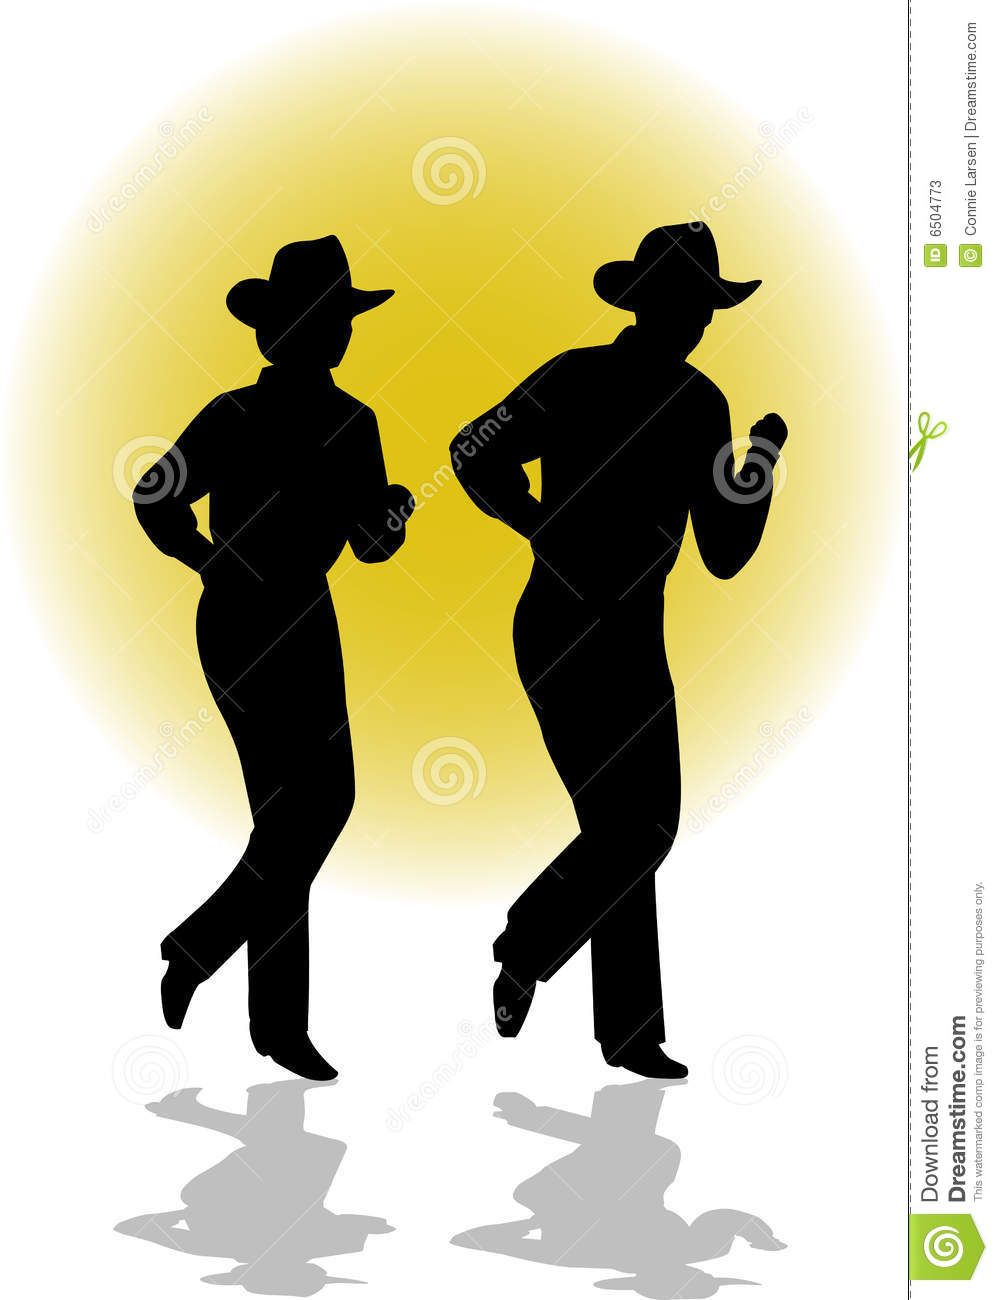 Silhouette of line dancers